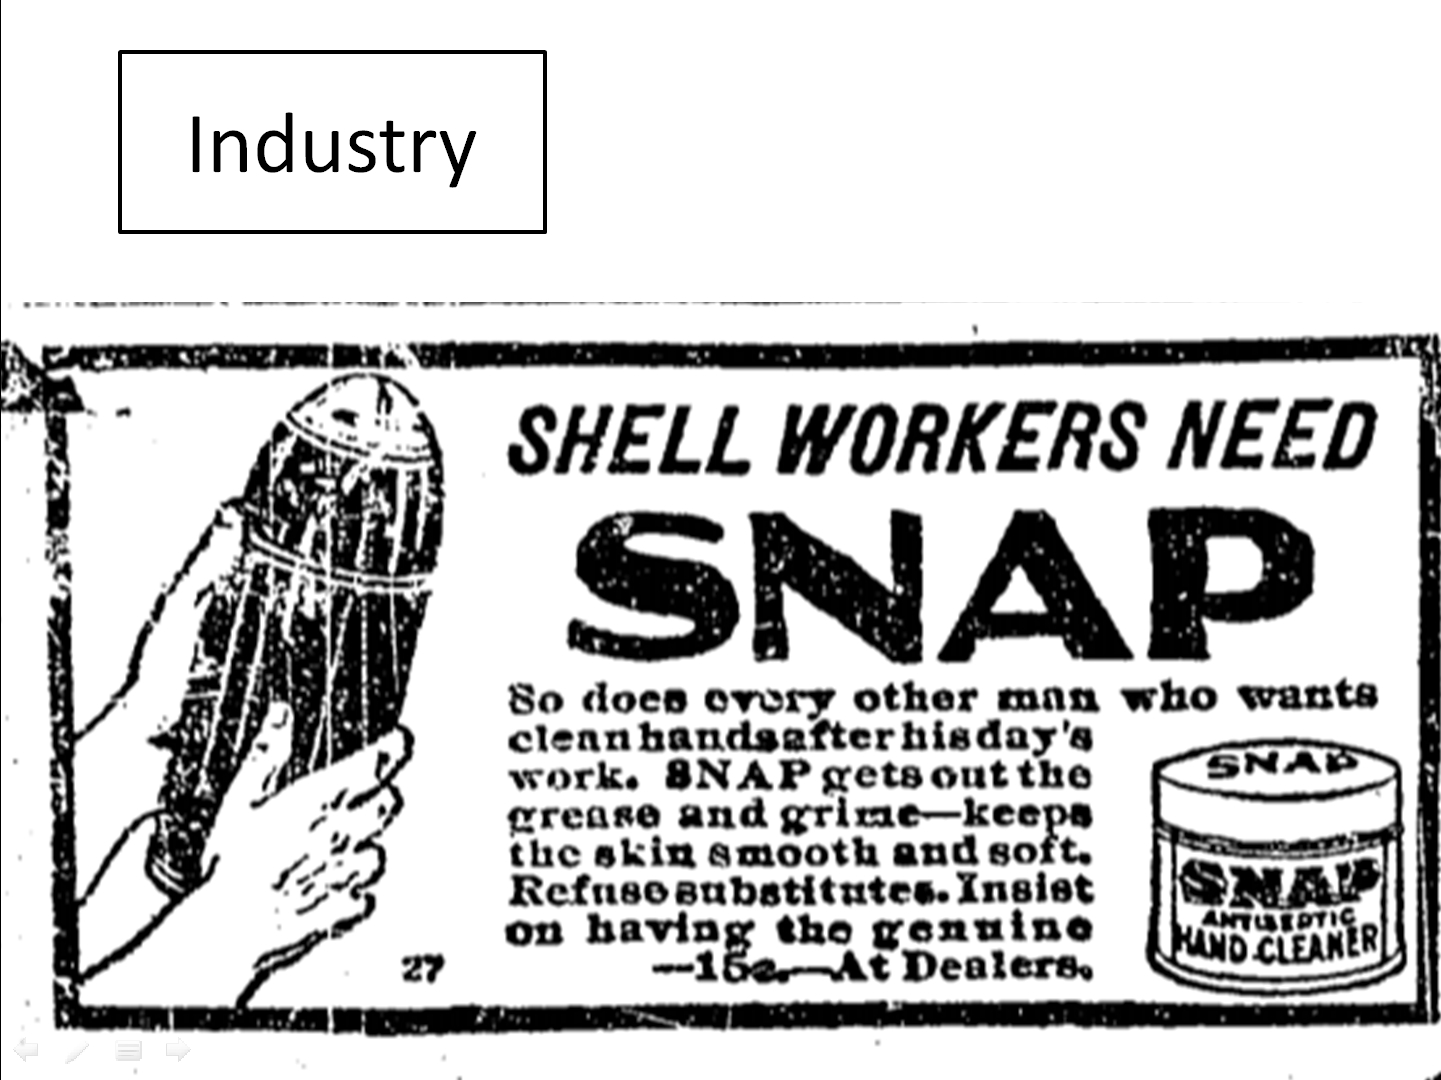 toronto star jan 2 many men and women from the worked in munitions plants during world war one making shells bullets